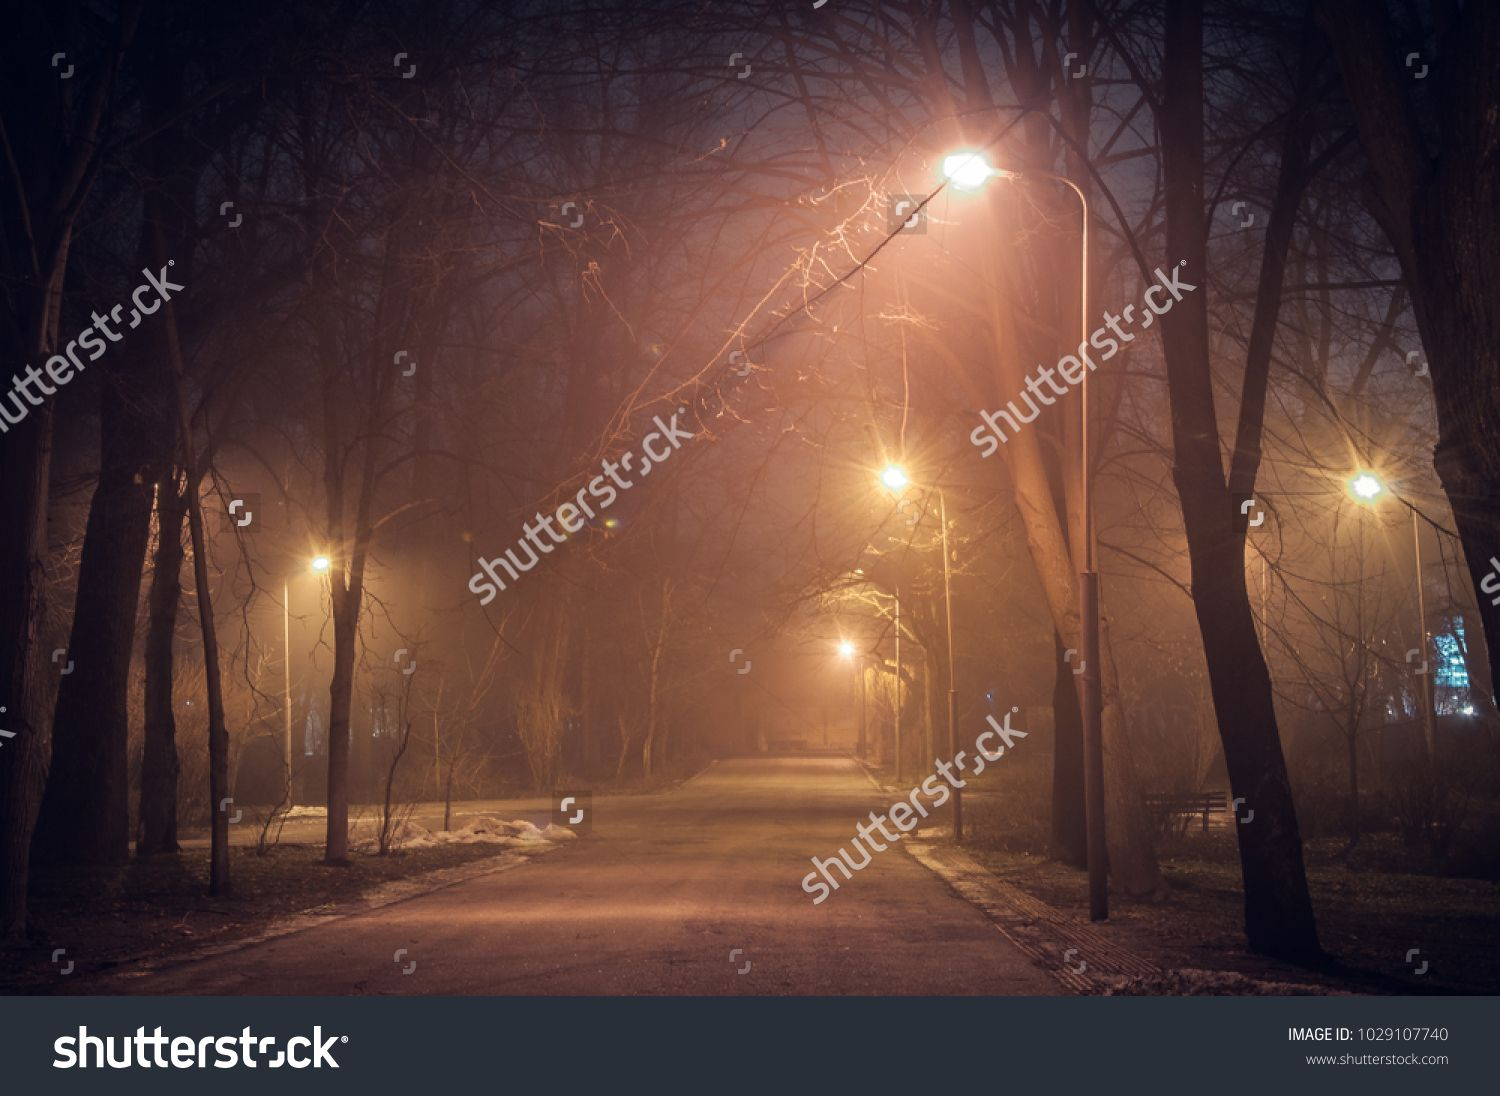 Footpath In A Fabulous Winter City Park At Night In Fog Beautiful Foggy Evening In The Park Kiev Ukraine Sponsored Ad City Park Night Footpath